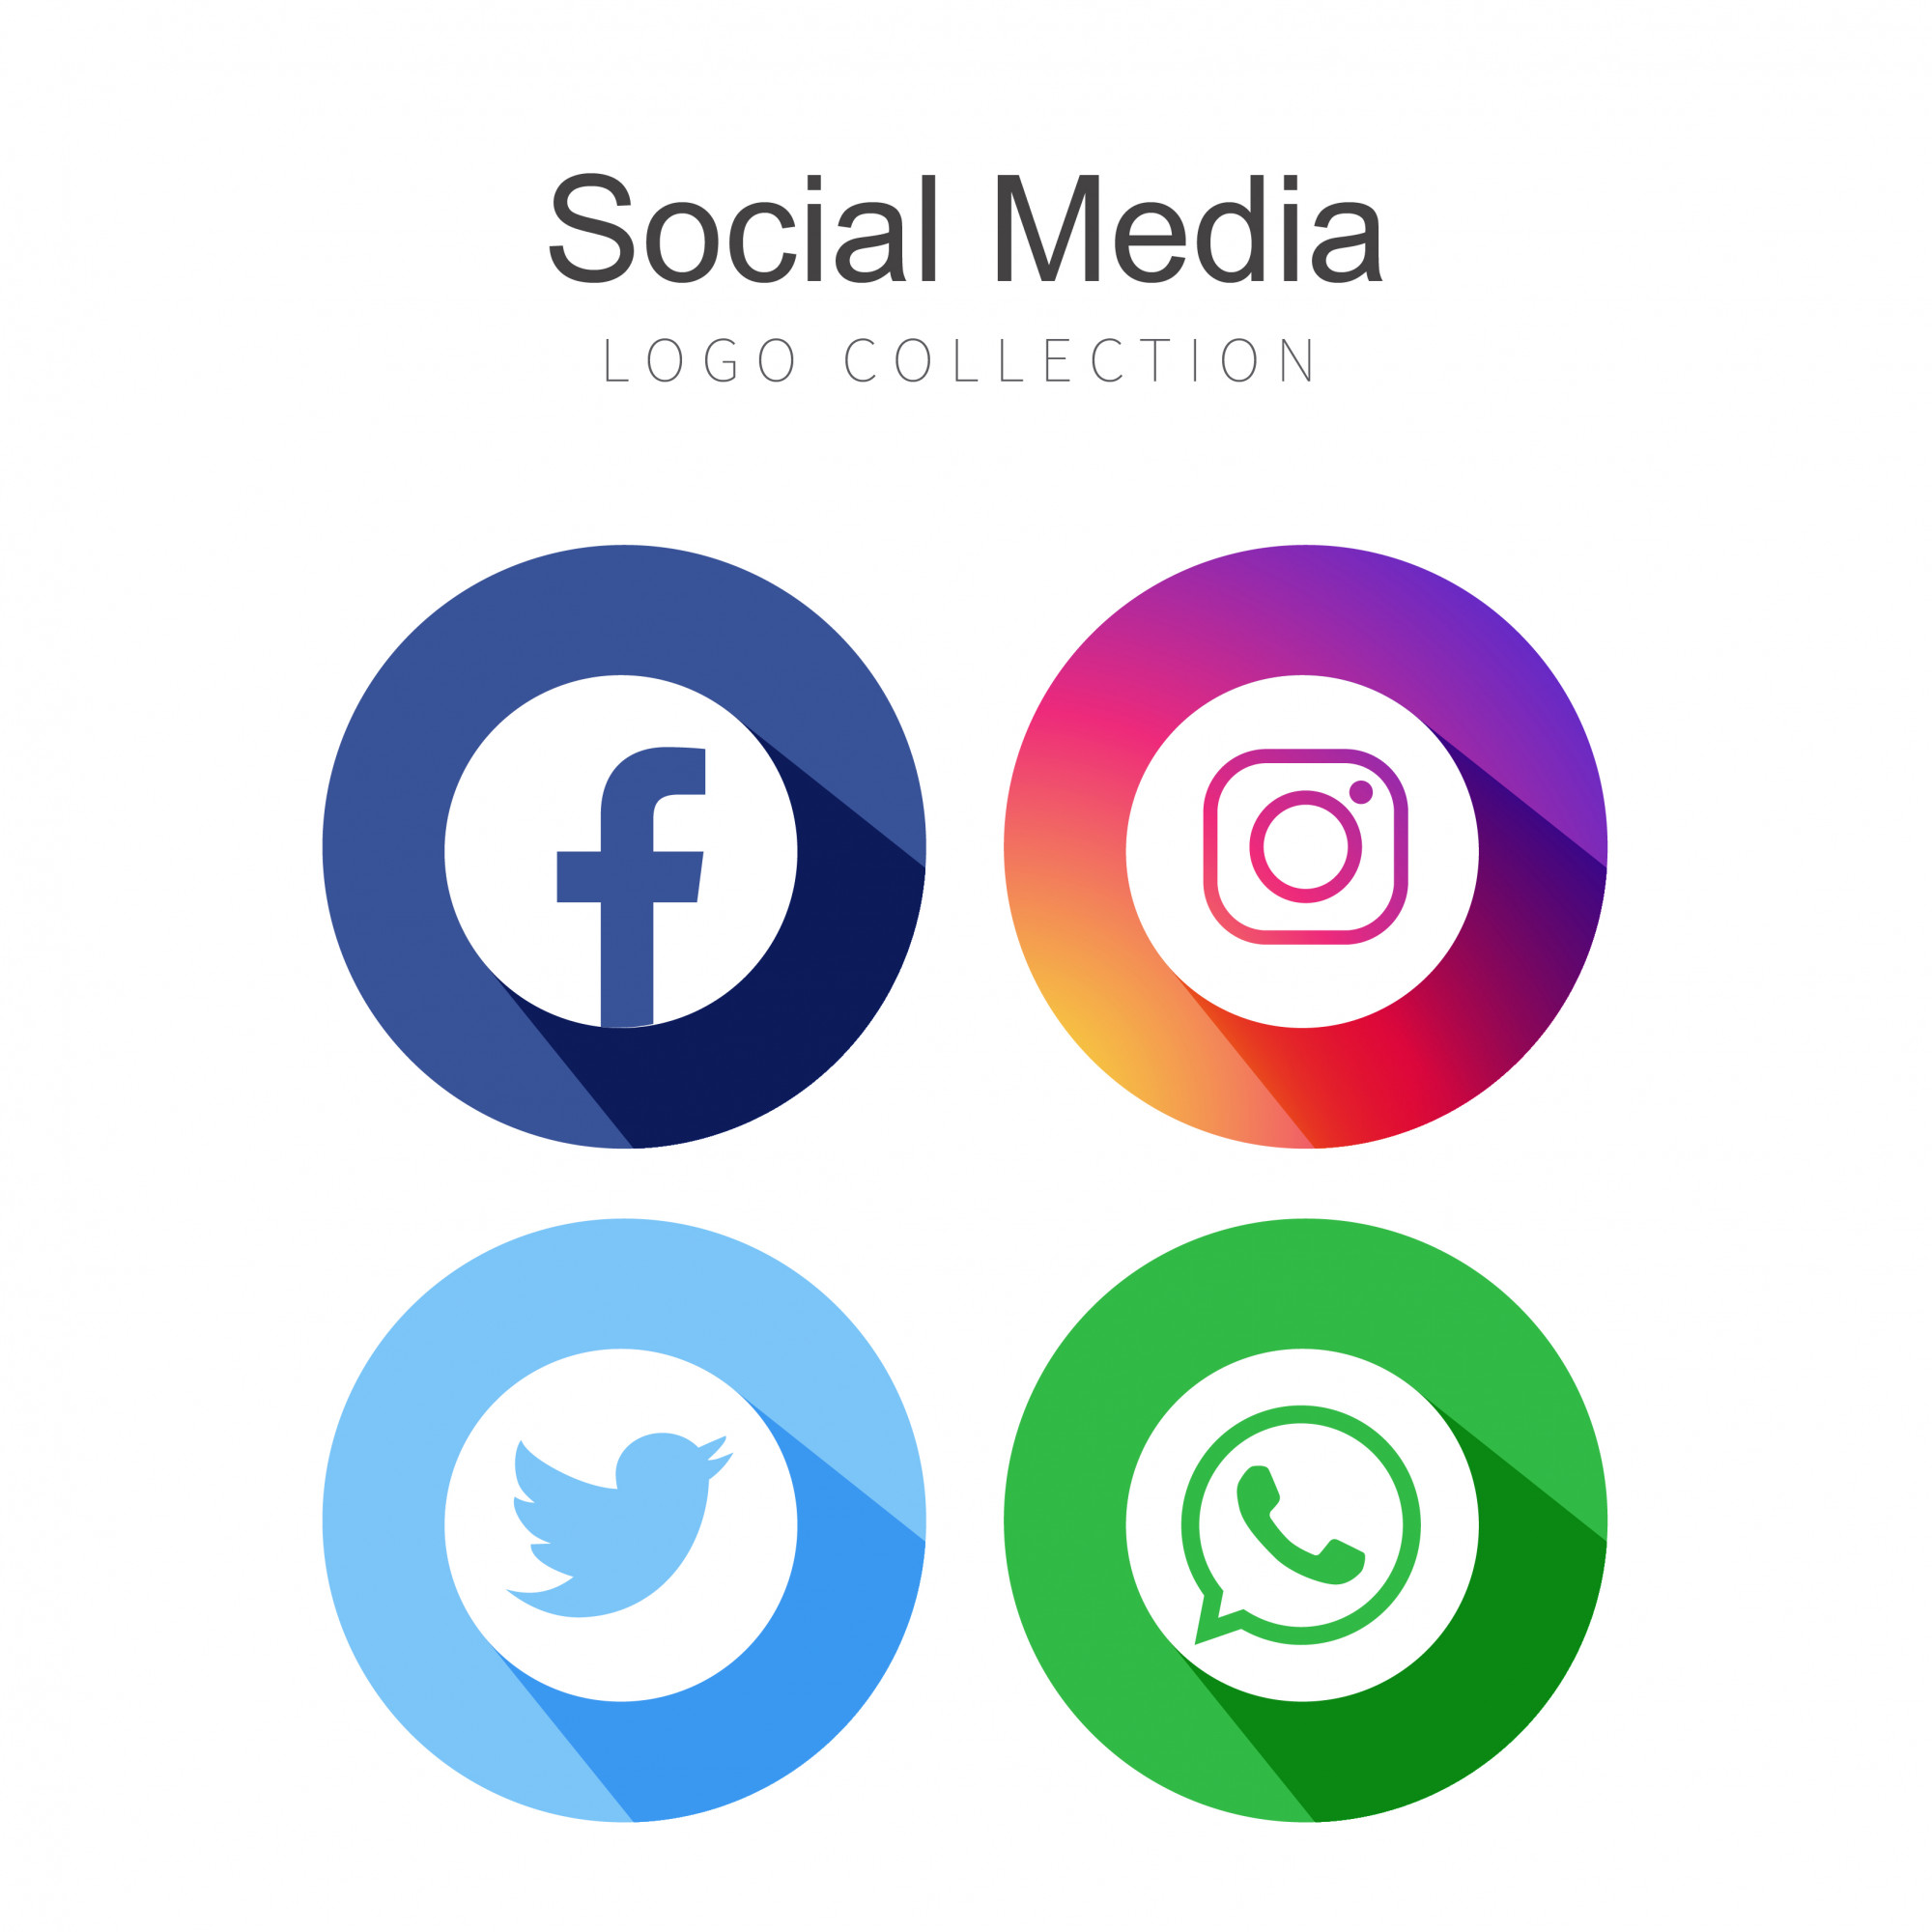 4 social networking